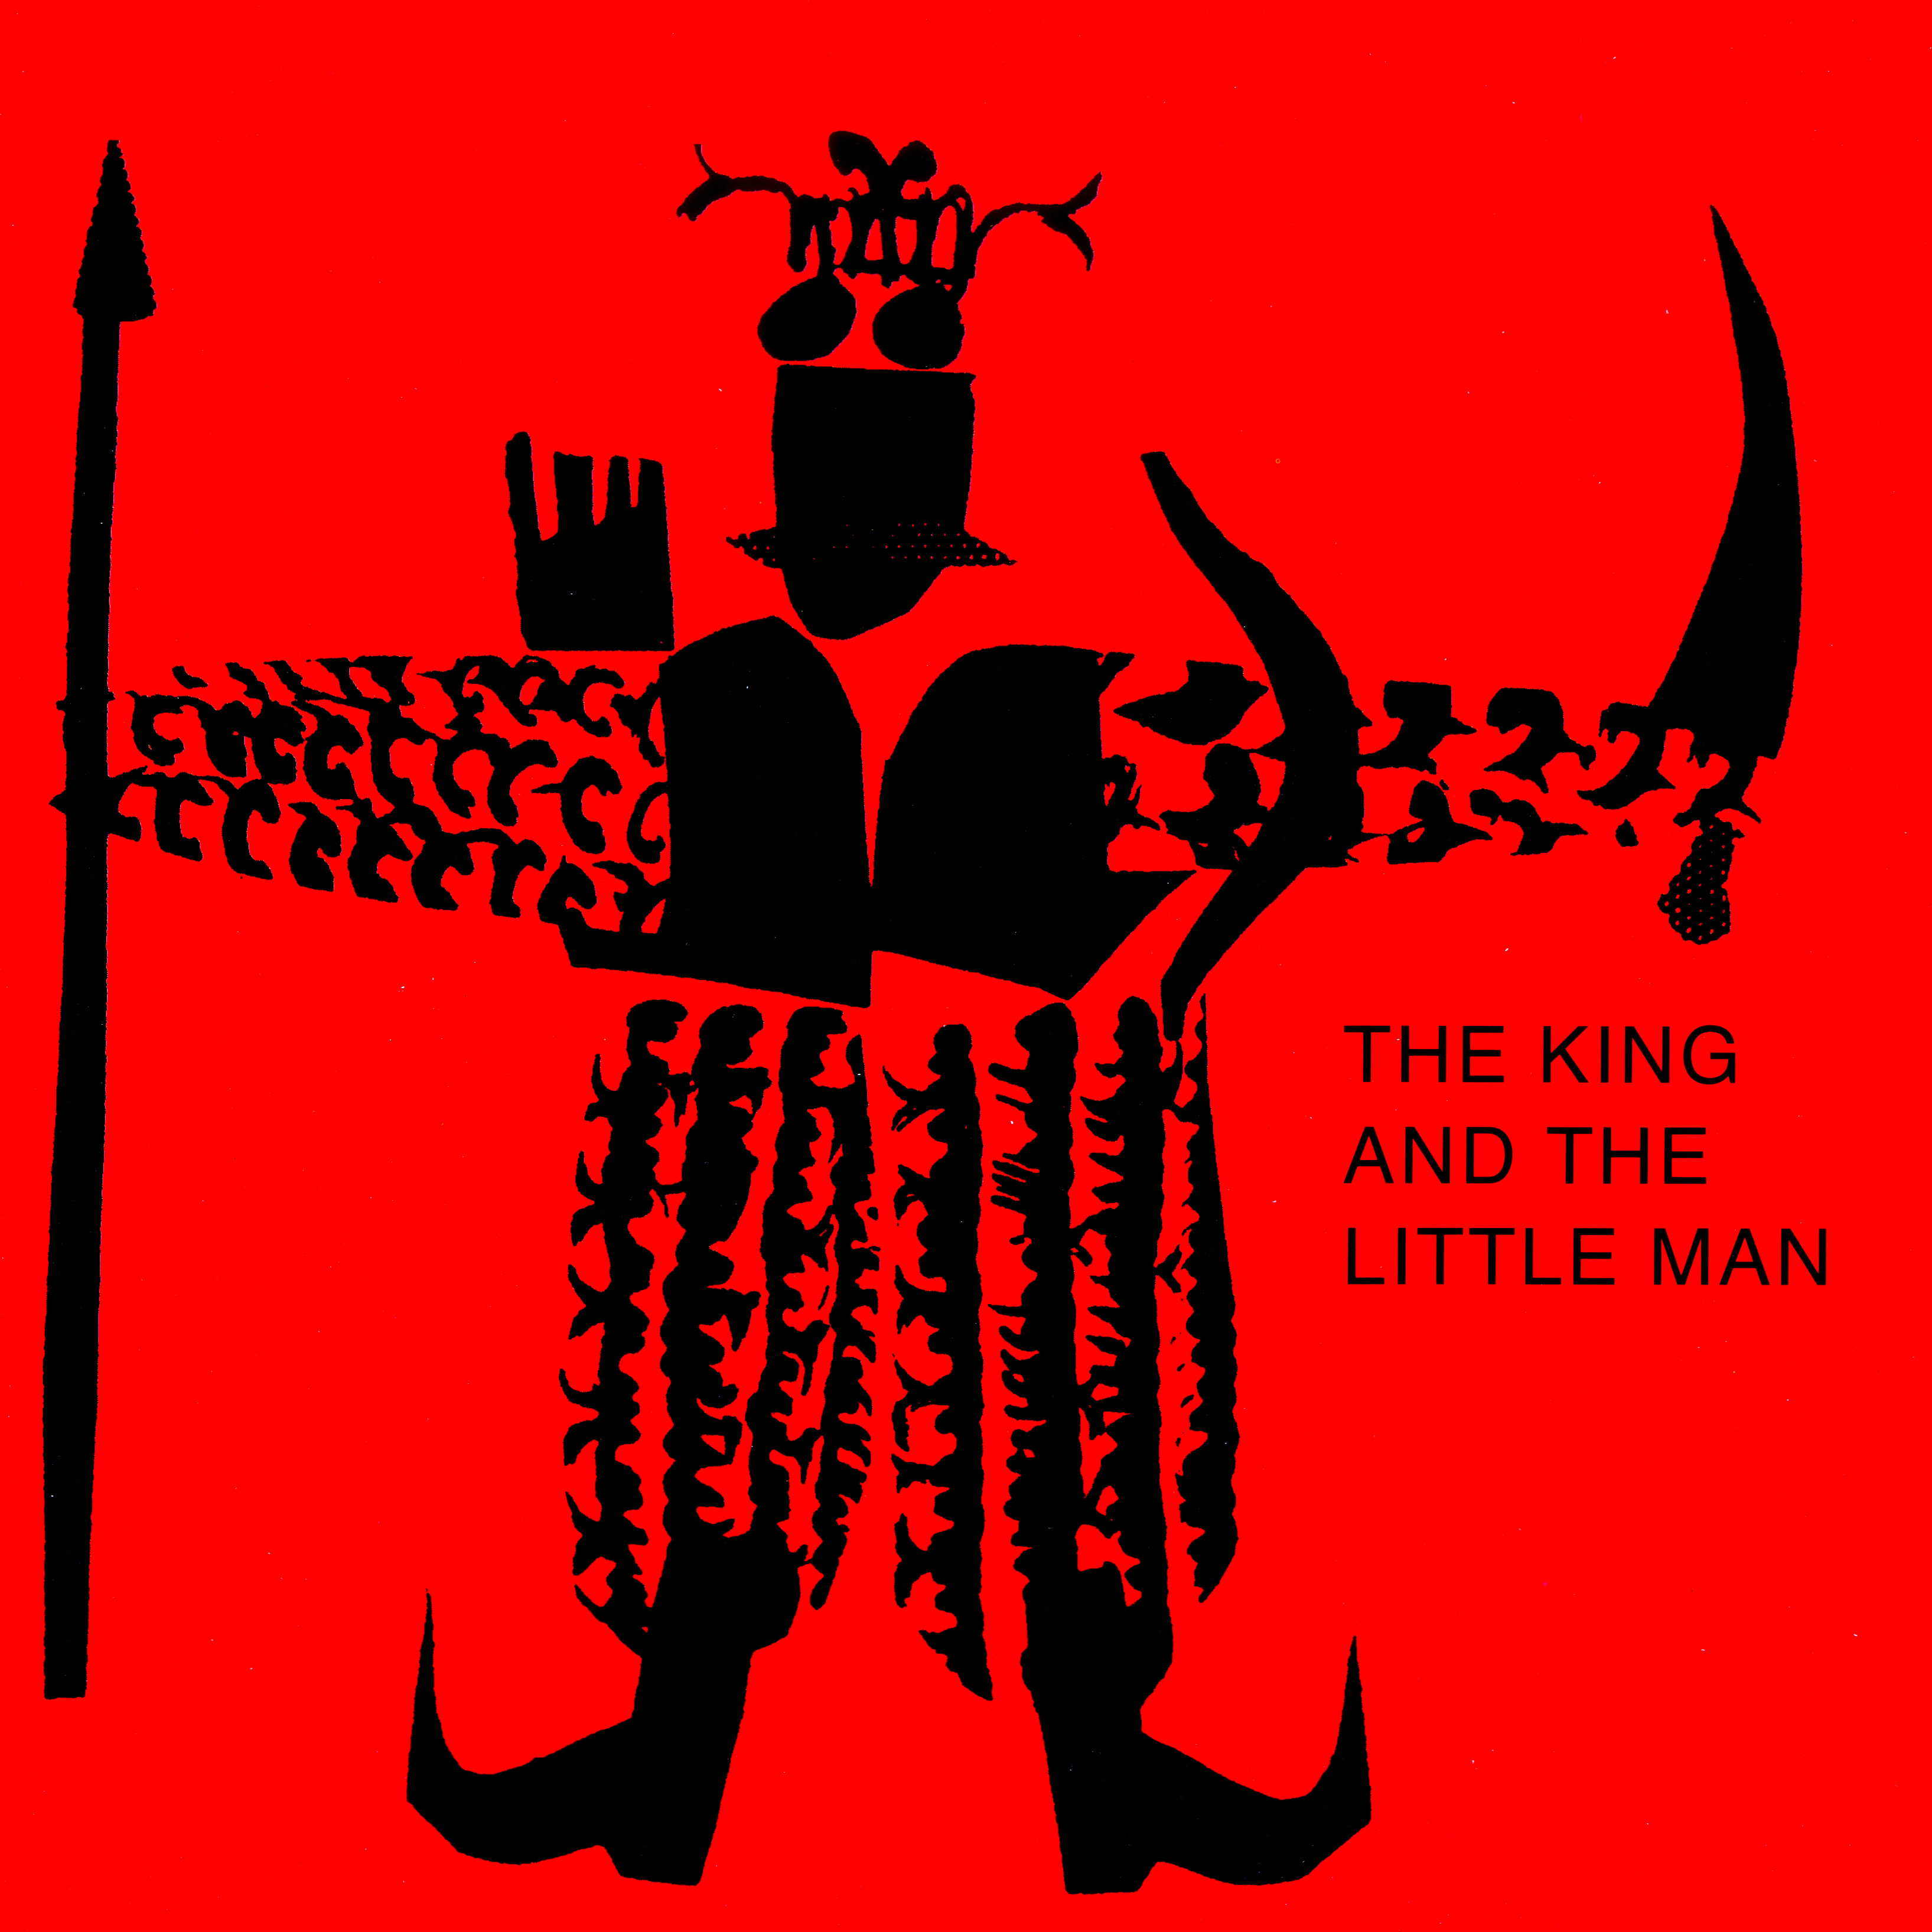 The King and the Little Man by K. G. Subramanyan | Seagull Books